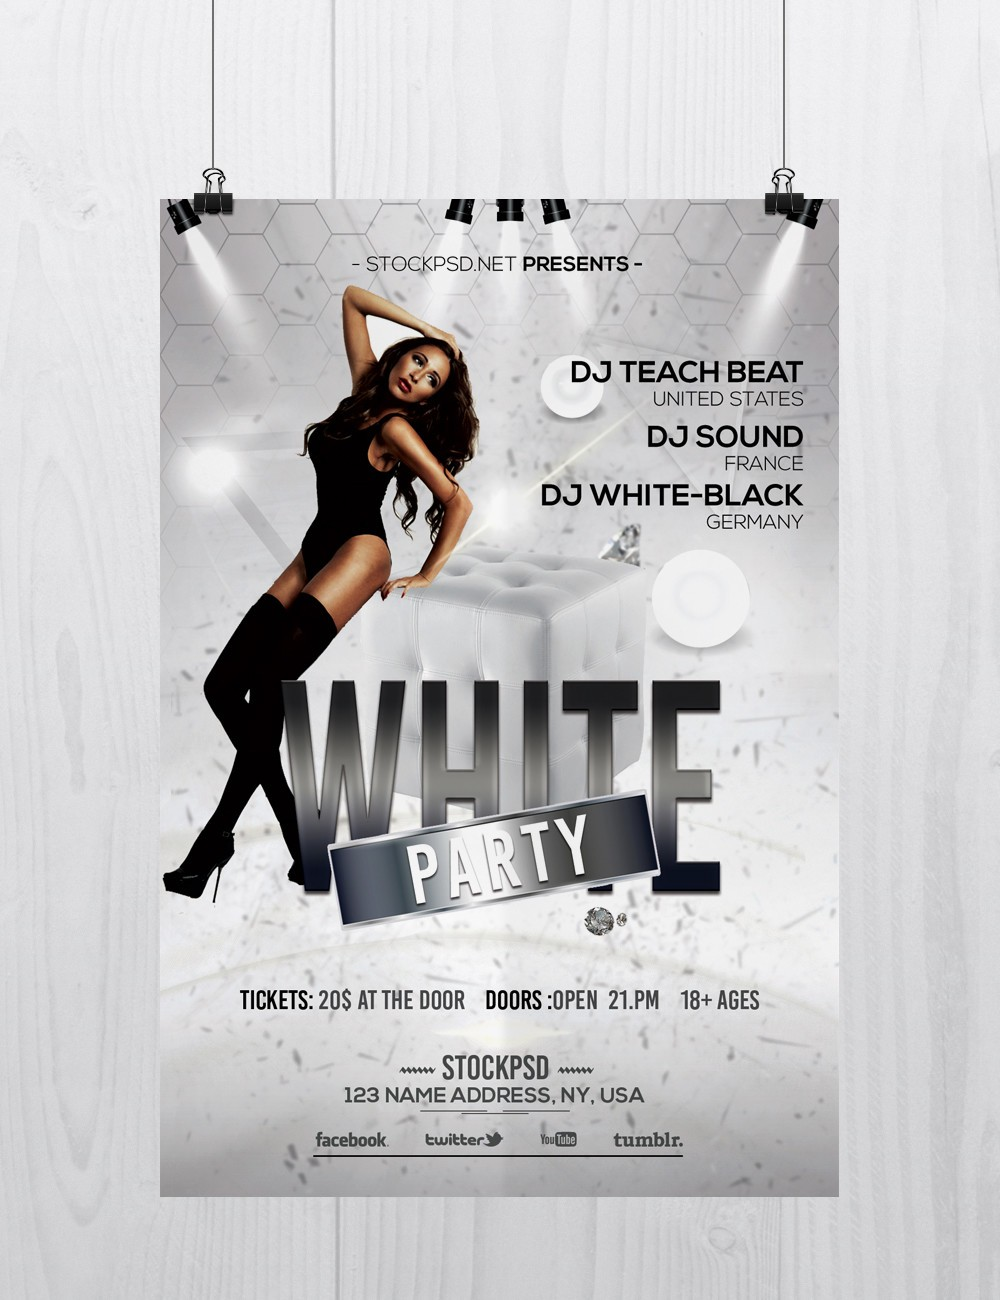 Stockpsdnet Freebie Templates White Party Free Elegant PSD - Black and white flyer template free